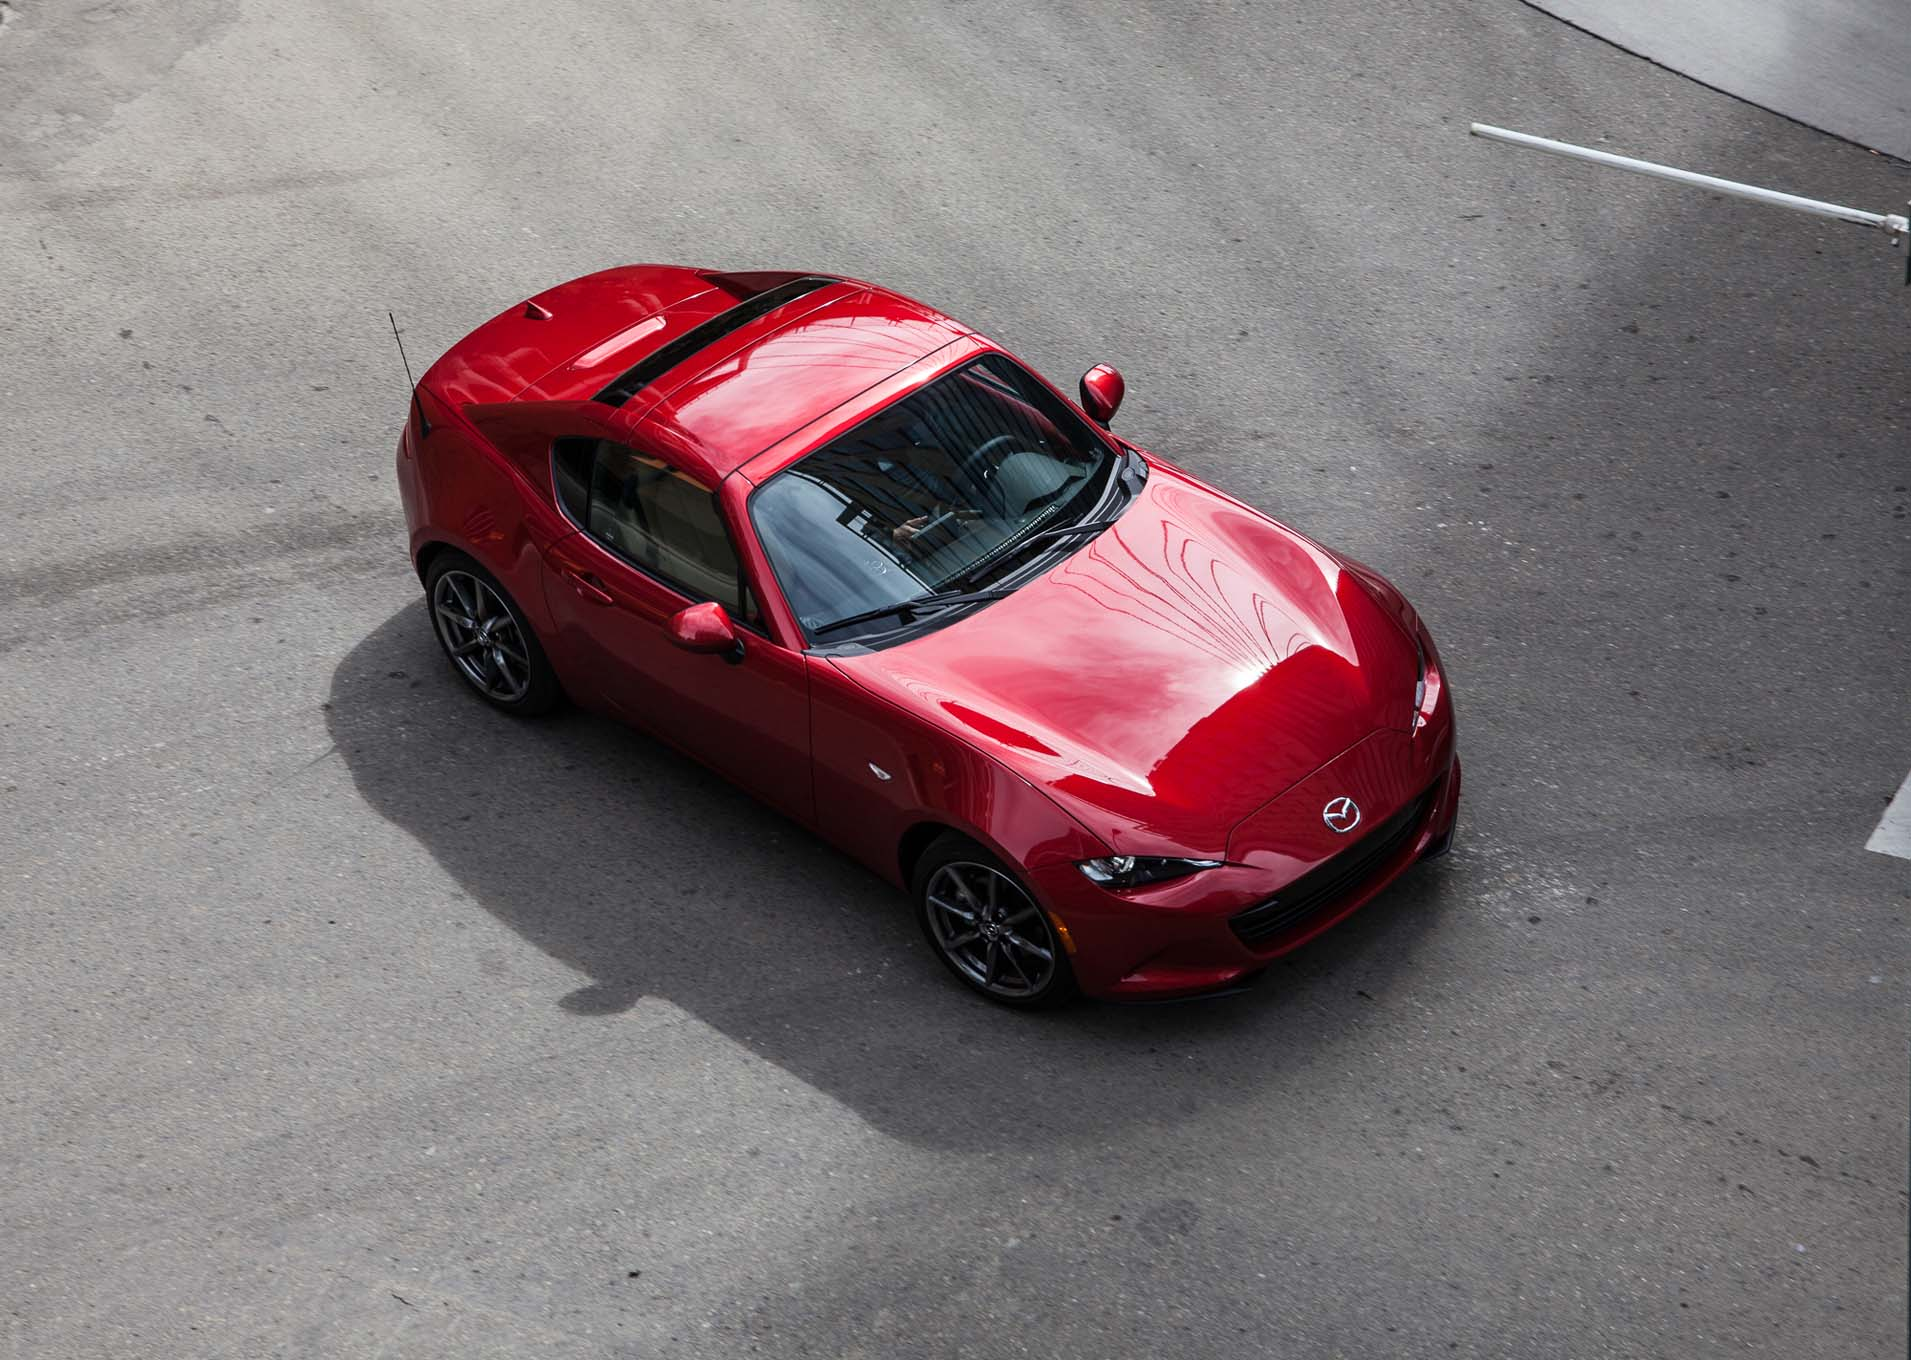 2017-Mazda-MX-5-Miata-RF-top-view-02